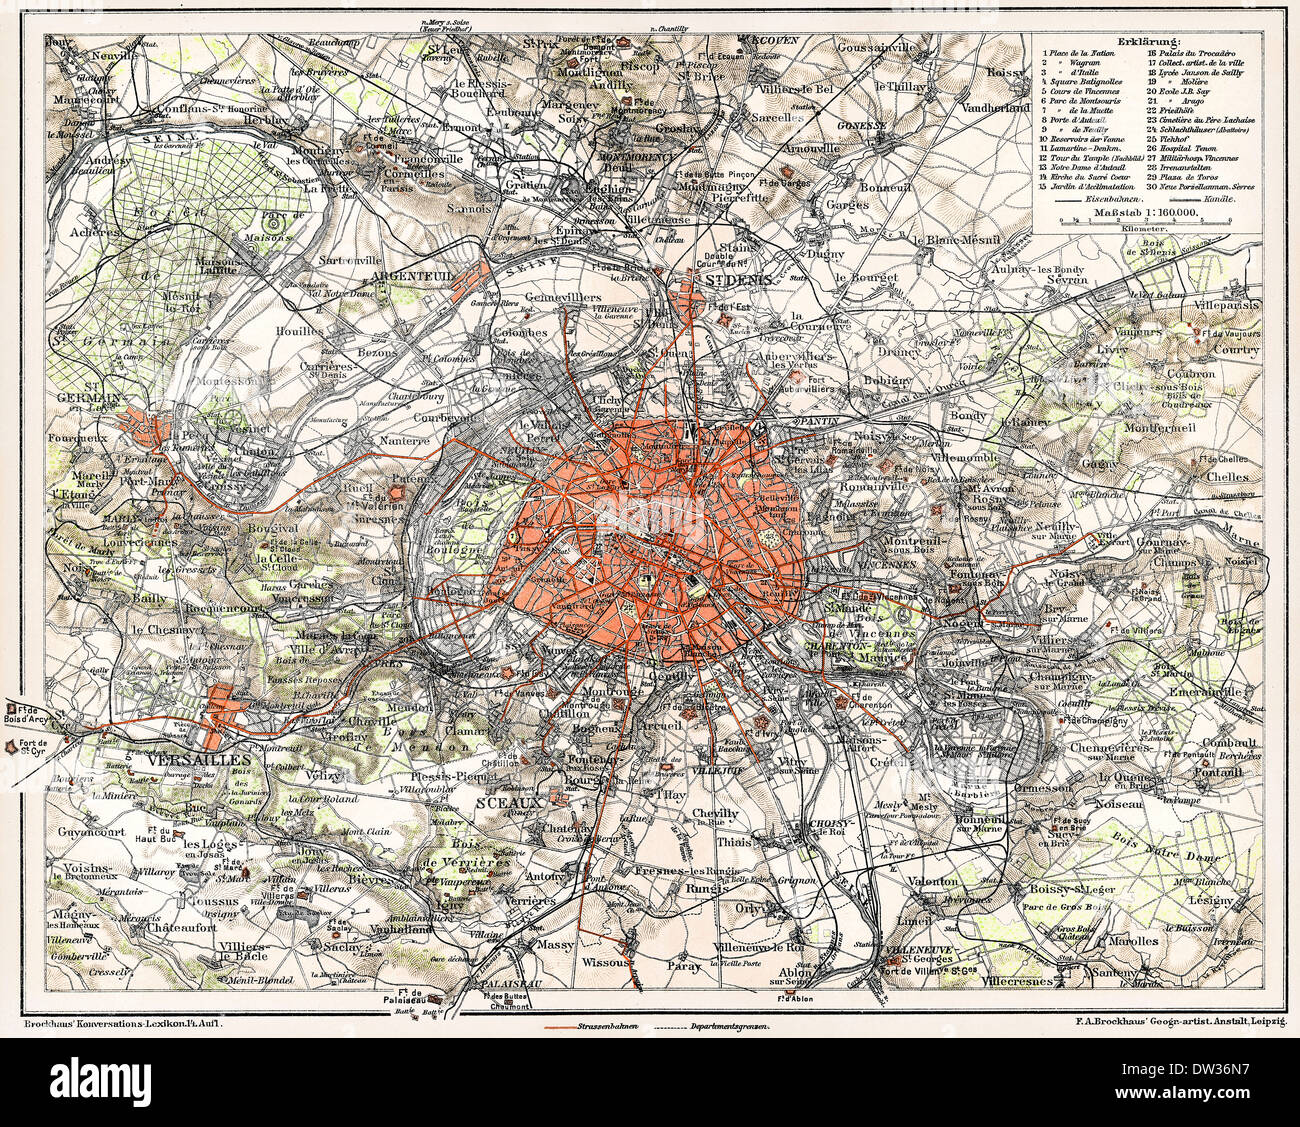 Historical map of Paris, France, 1896, - Stock Image